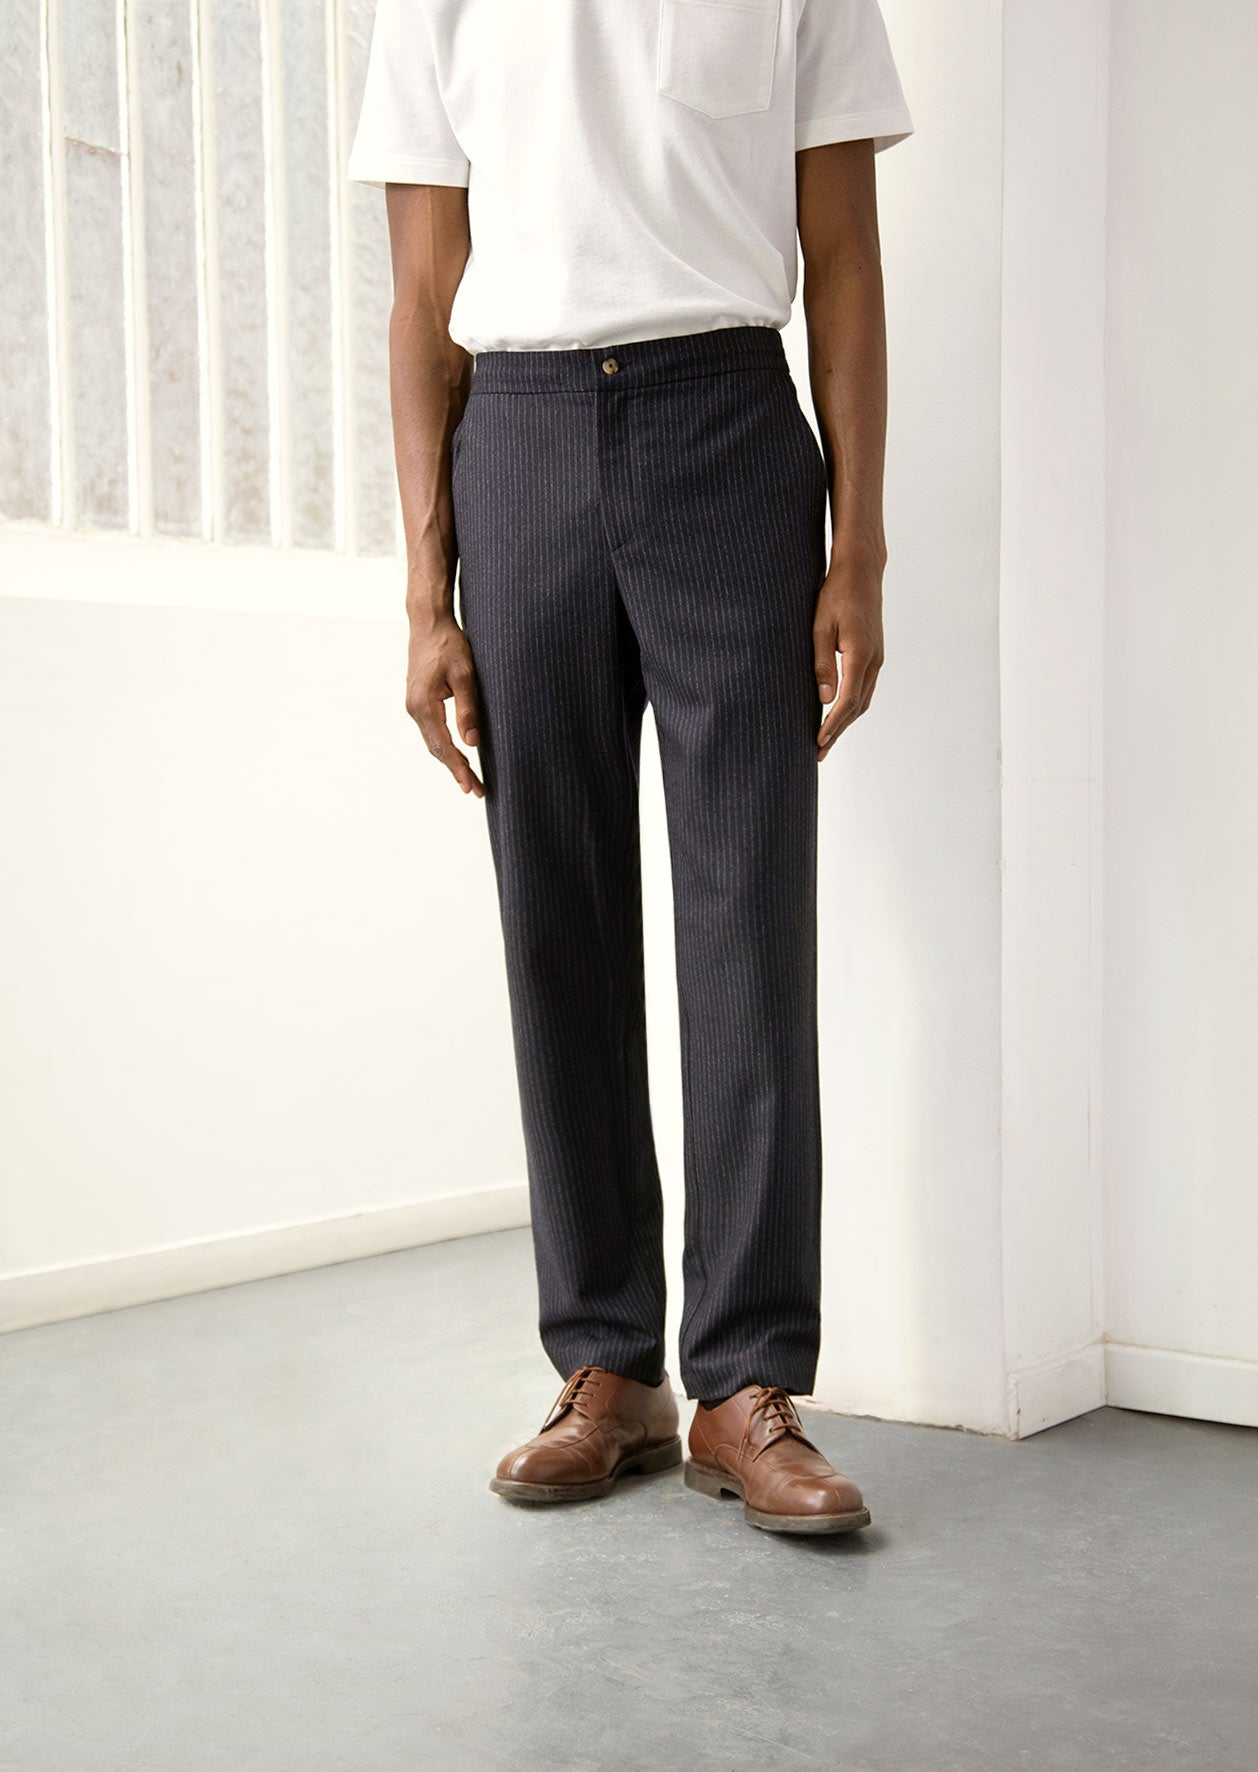 De Bonne Facture - Easy trousers - Navy Pinstripe - Wool flannel